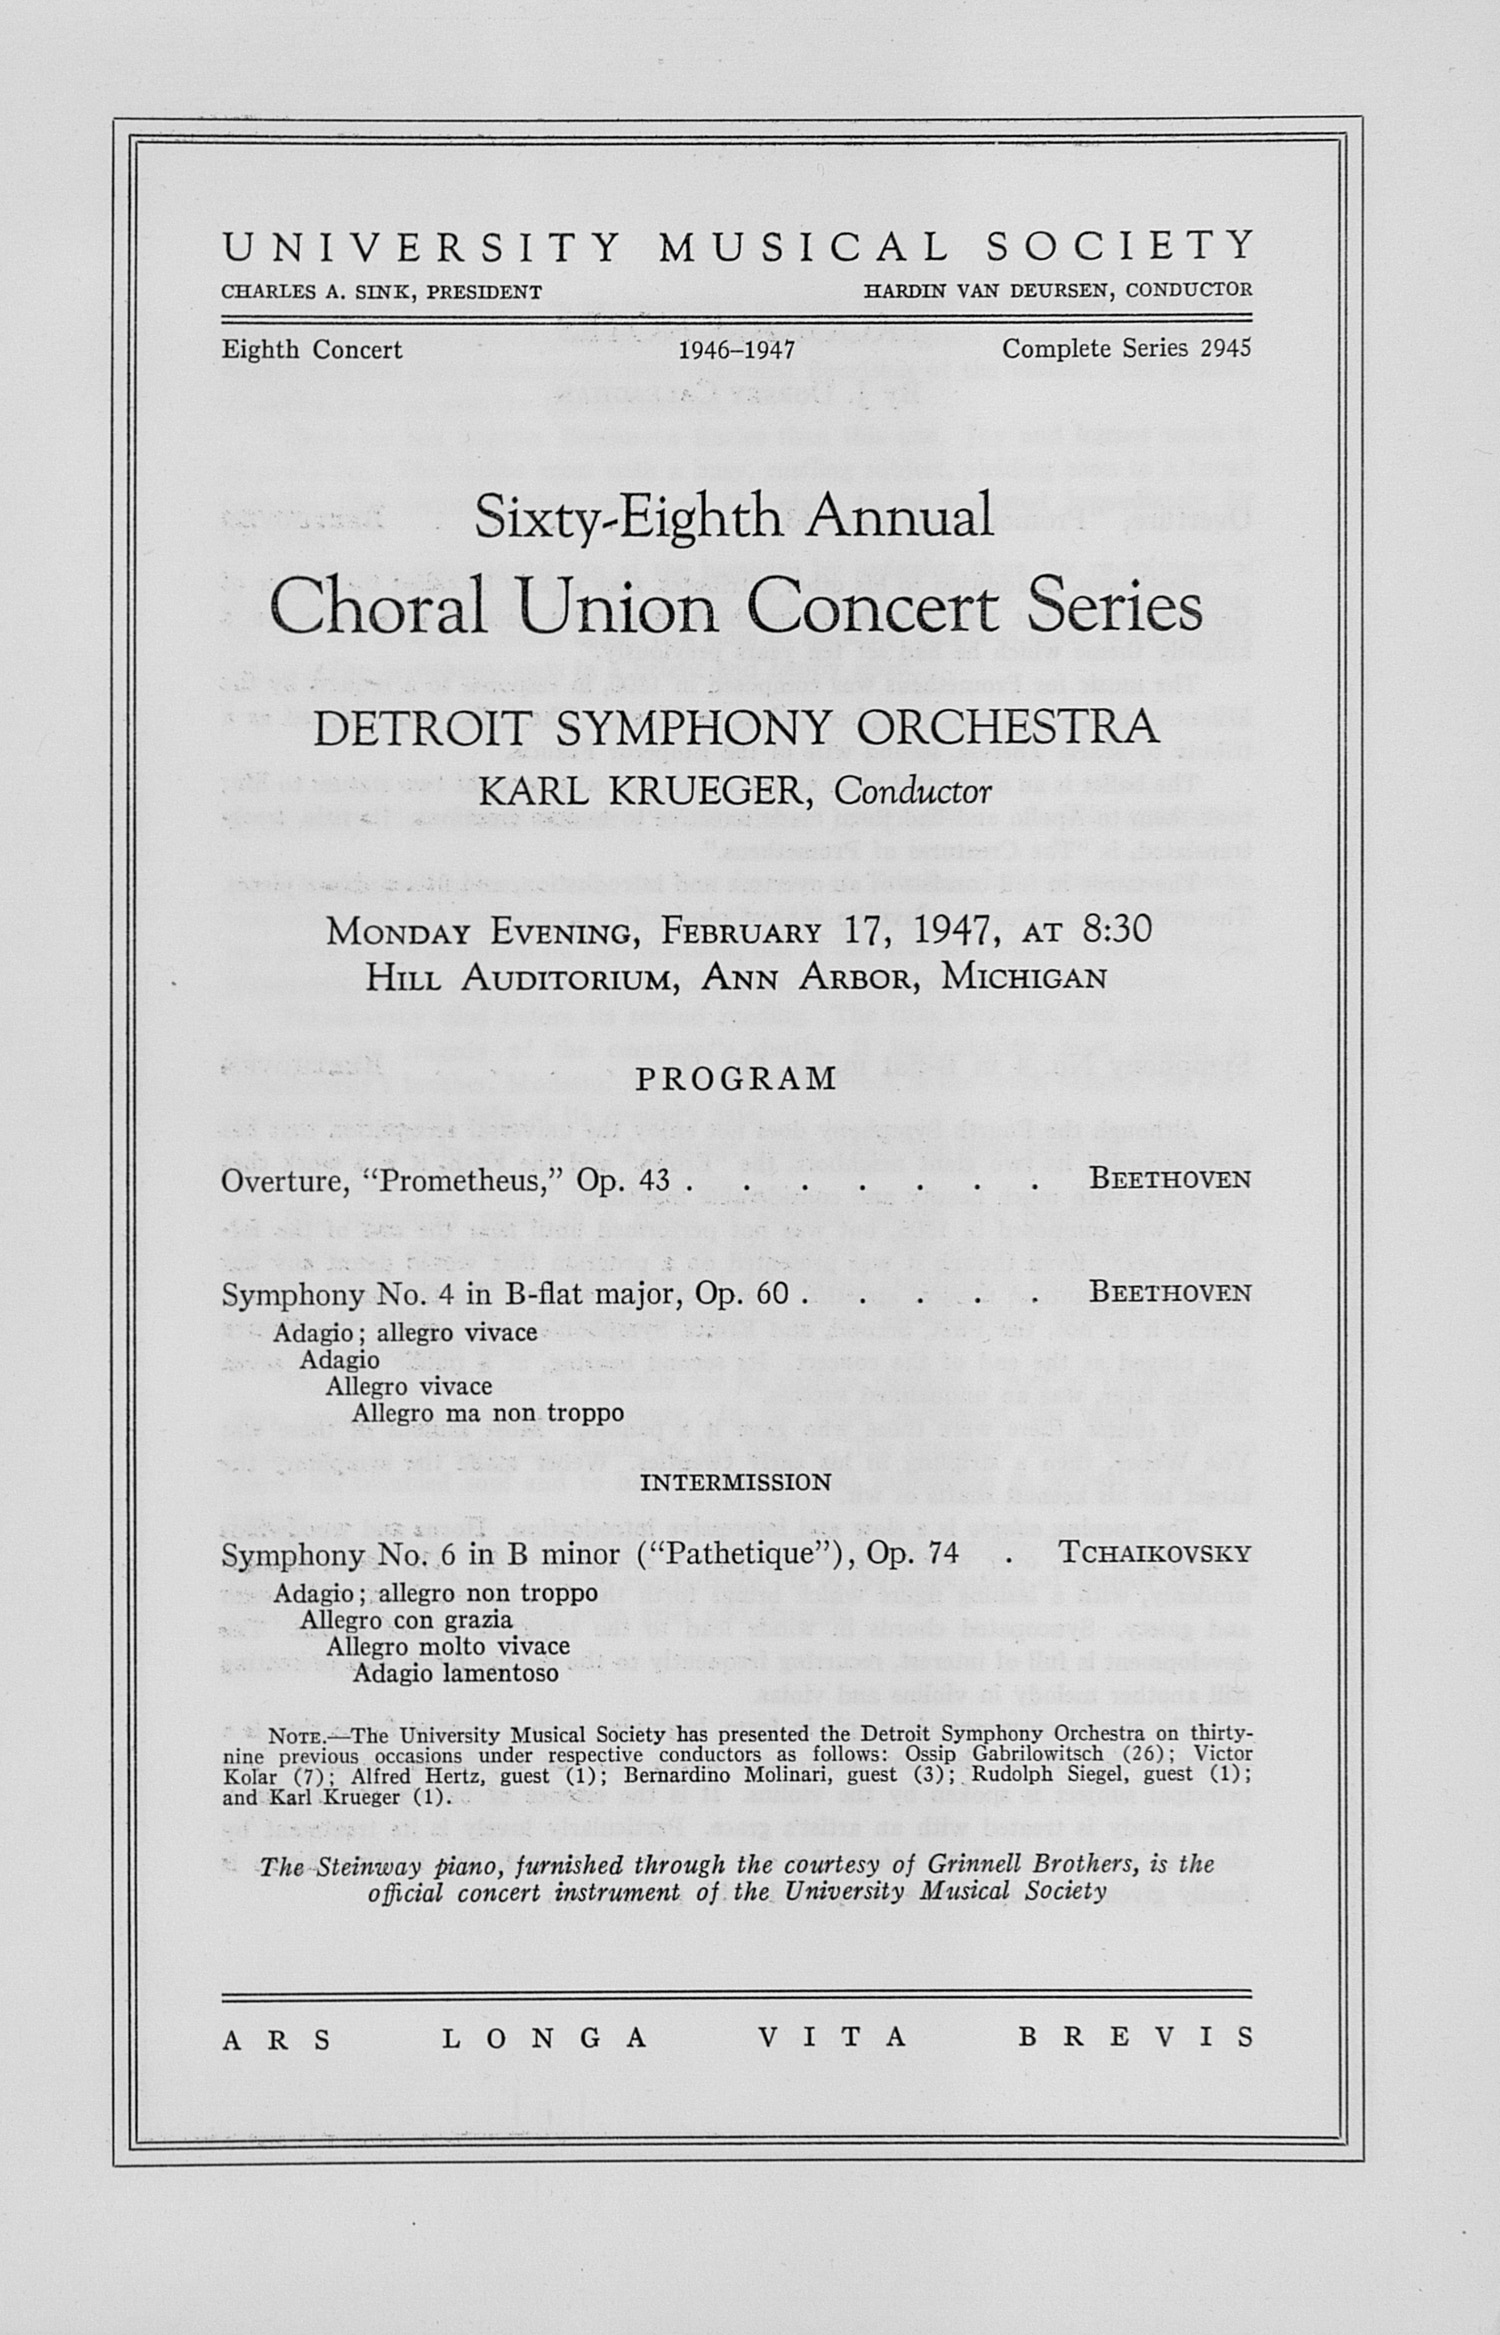 UMS Concert Program, February 17, 1947: Sixty-eighth Annual Choral Union Concert Series -- Detroit Symphony Orchestra image